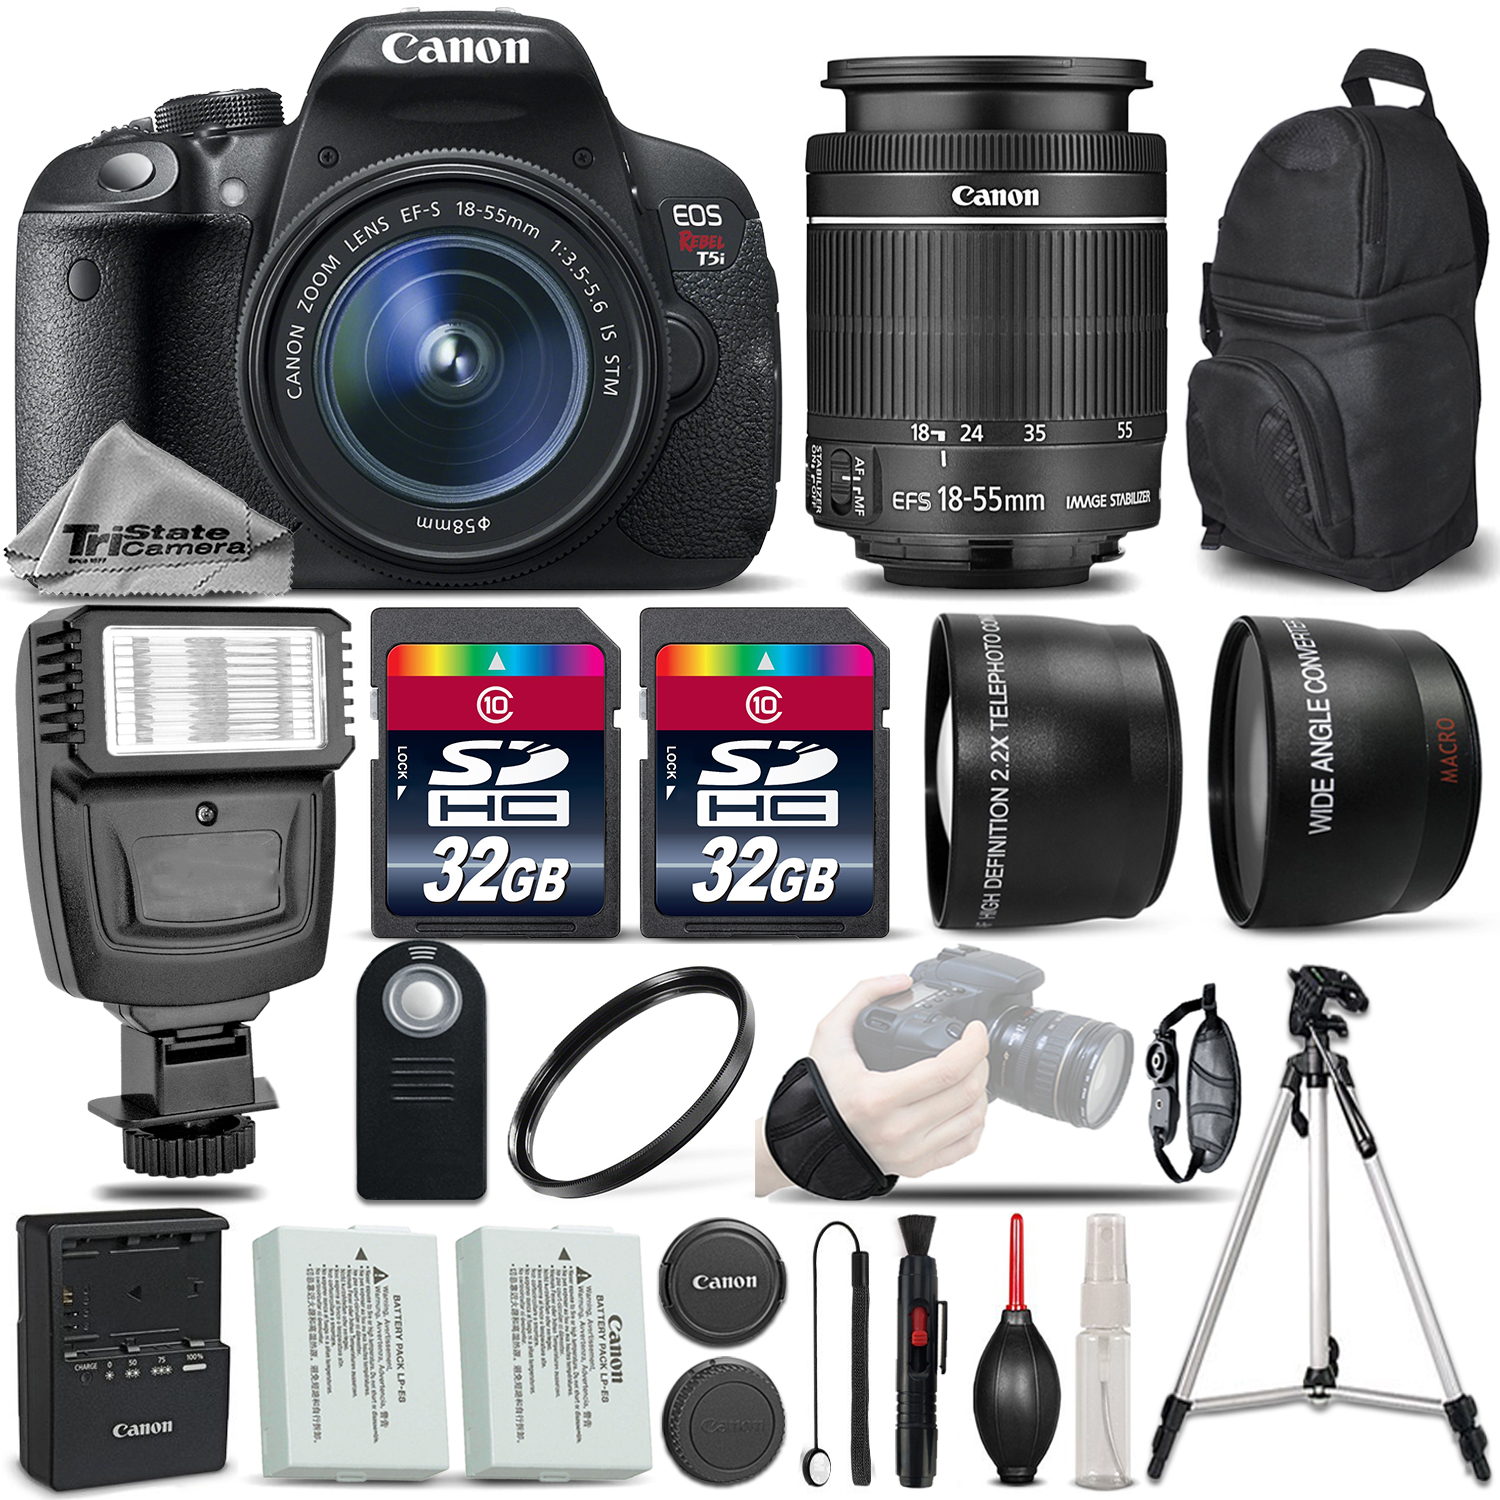 EOS Rebel T5i SLR Camera 700D + 18-55mm IS-3 Lens Kit + Flash+ 64GB &MORE *FREE SHIPPING*